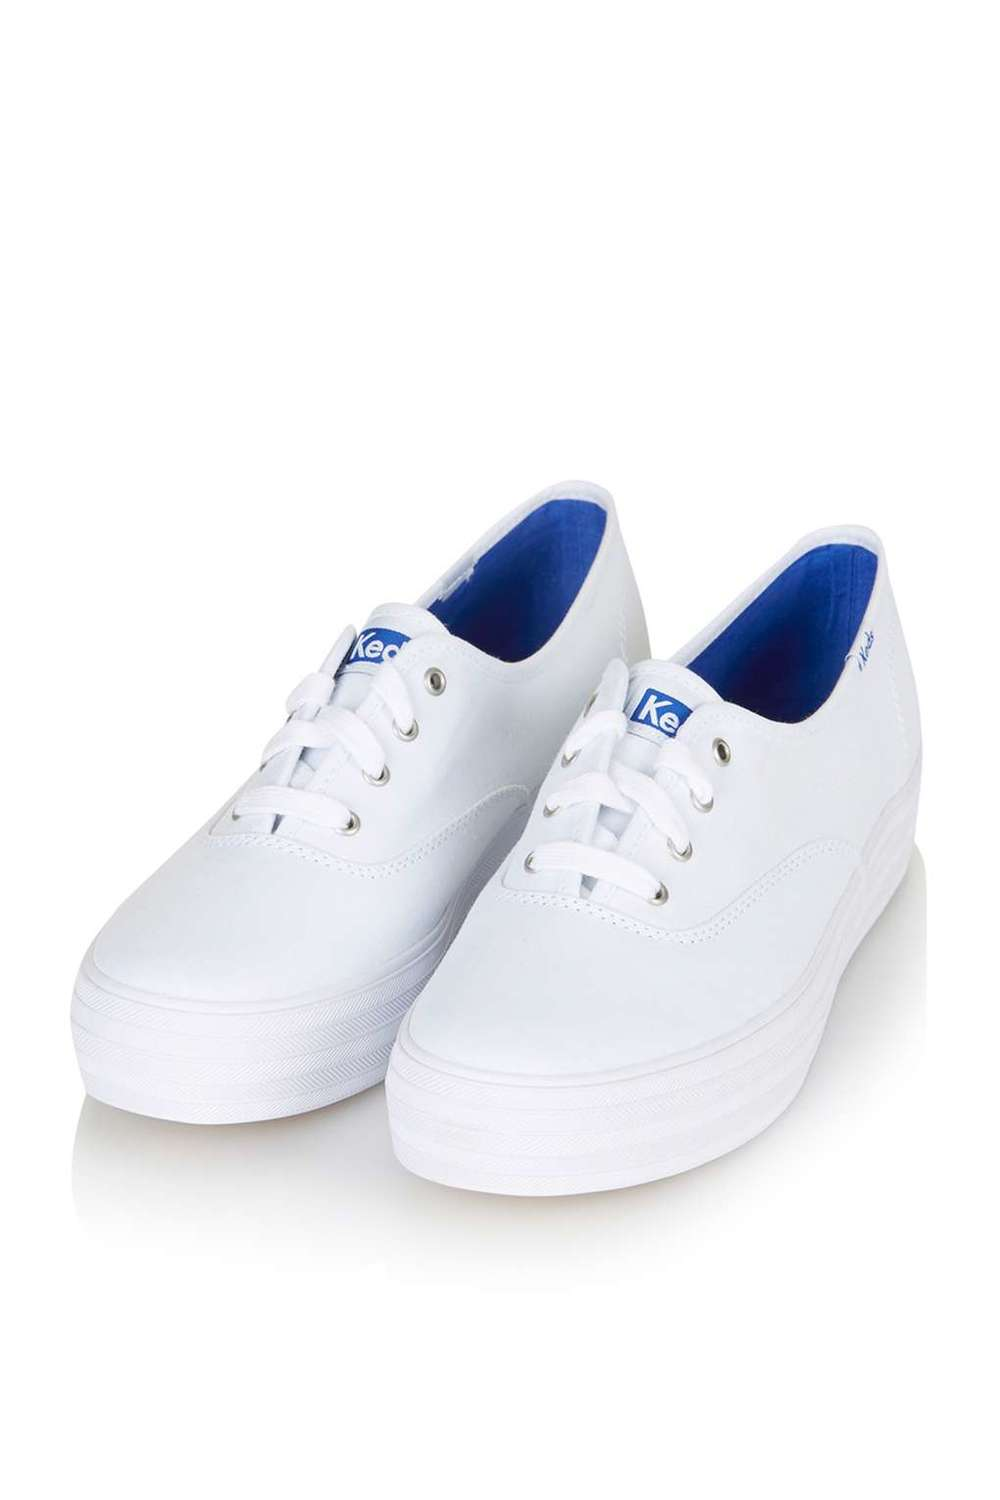 TOPSHOP - KEDS - Tripple Seasonal Trainers